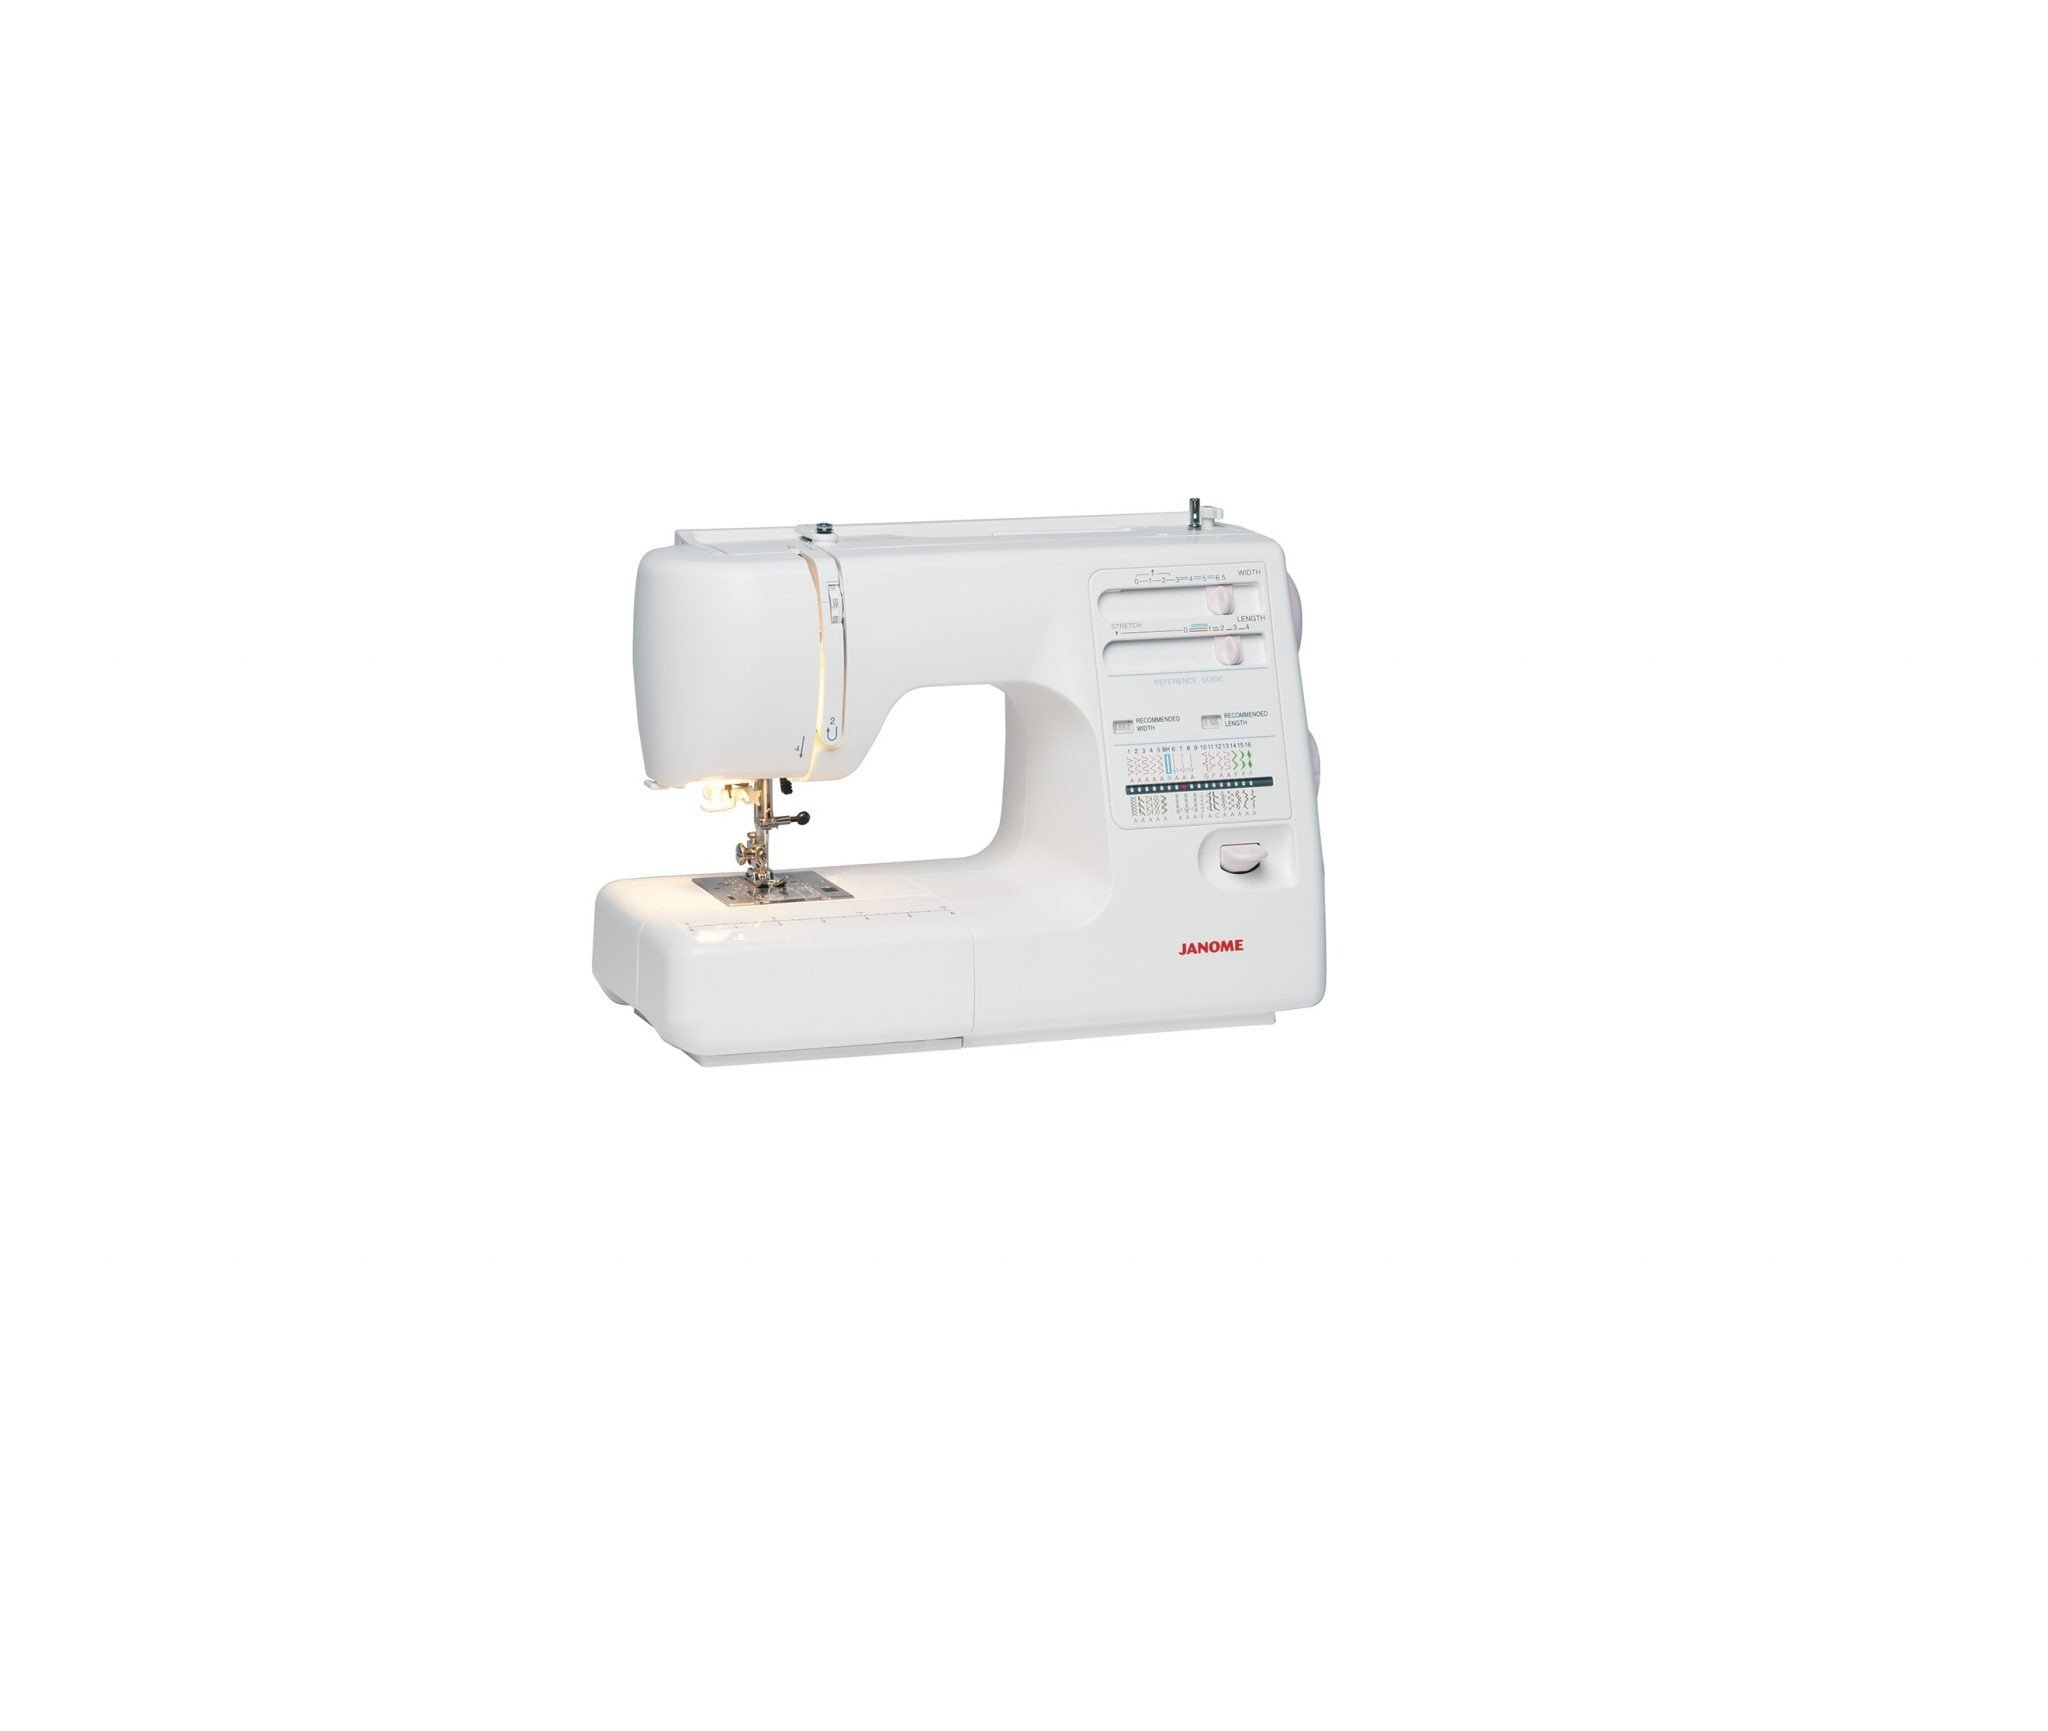 Janome My Style 27 MS5027 LE MS-5027LE Mechanical Sewing Machine Janome